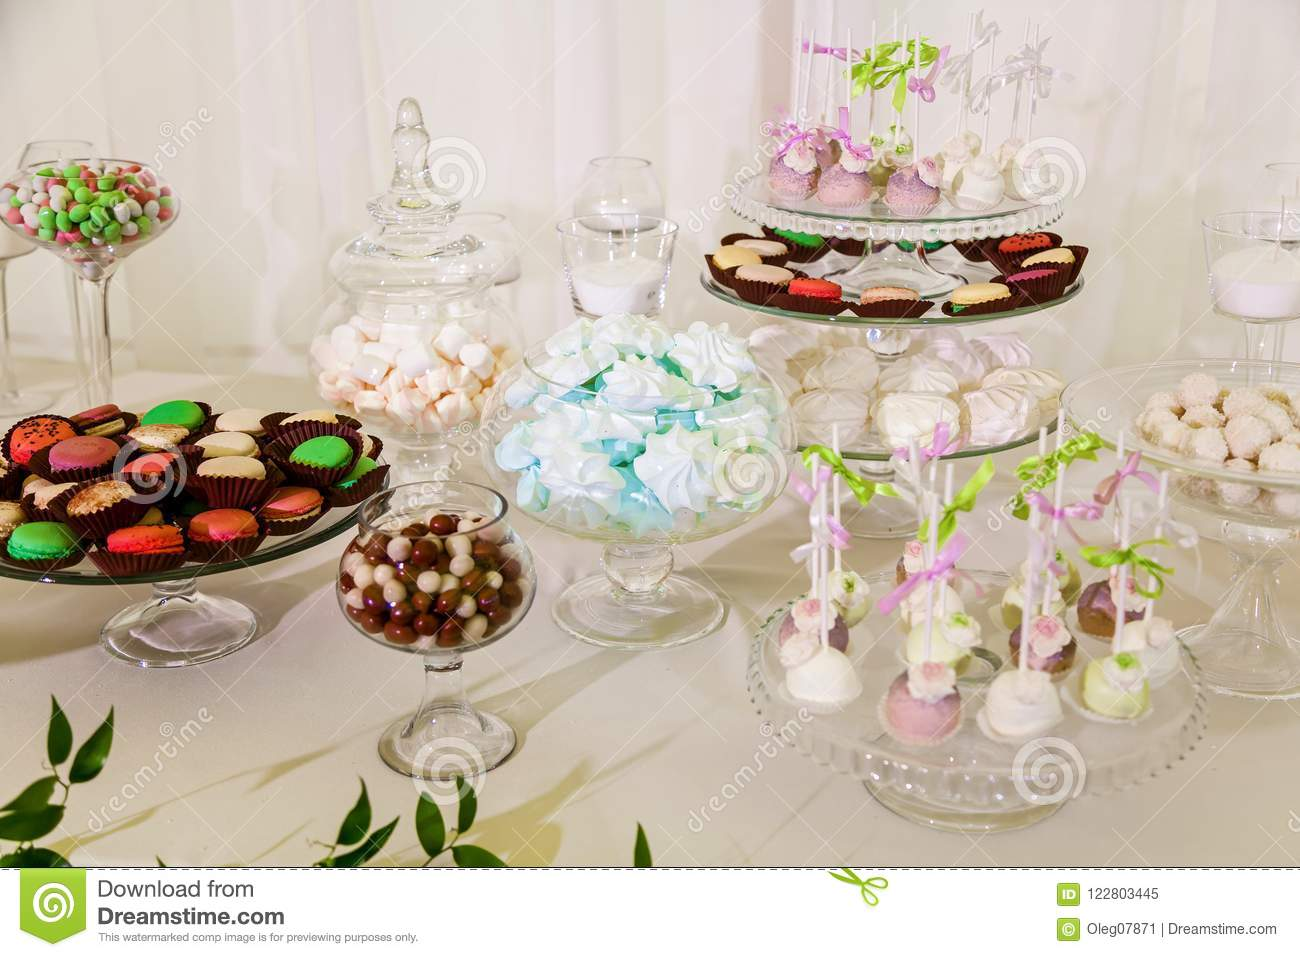 Strange Sweet Table At The Wedding Celebration Stock Image Image Download Free Architecture Designs Embacsunscenecom